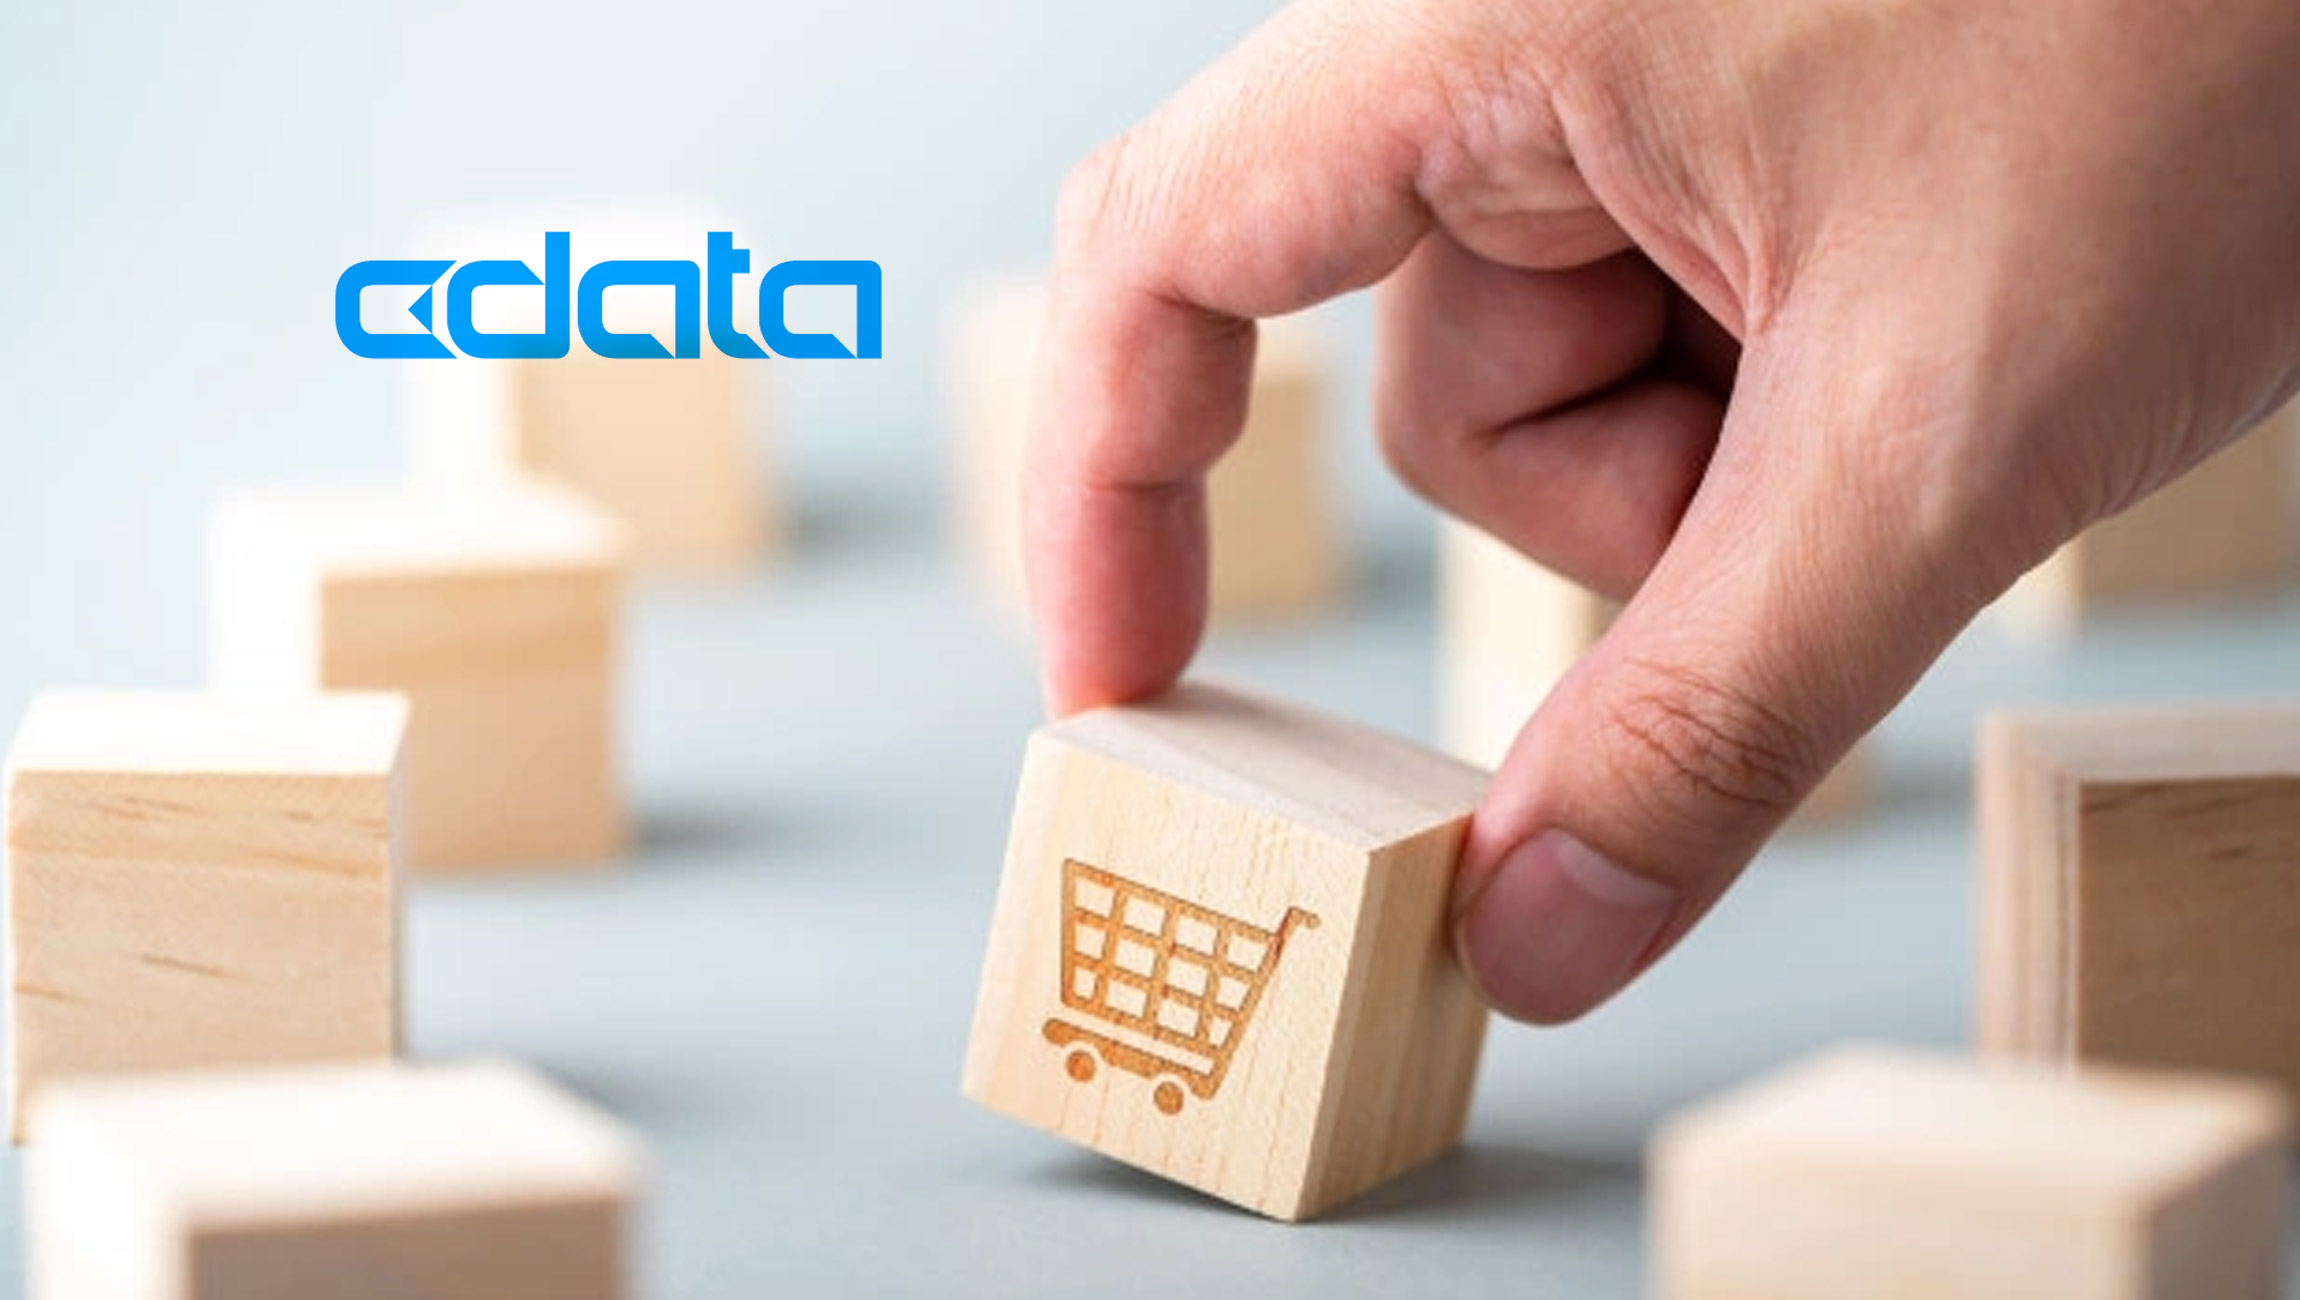 CData Releases ArcESB Shopify Connector, Expands Offering to eCommerce Market